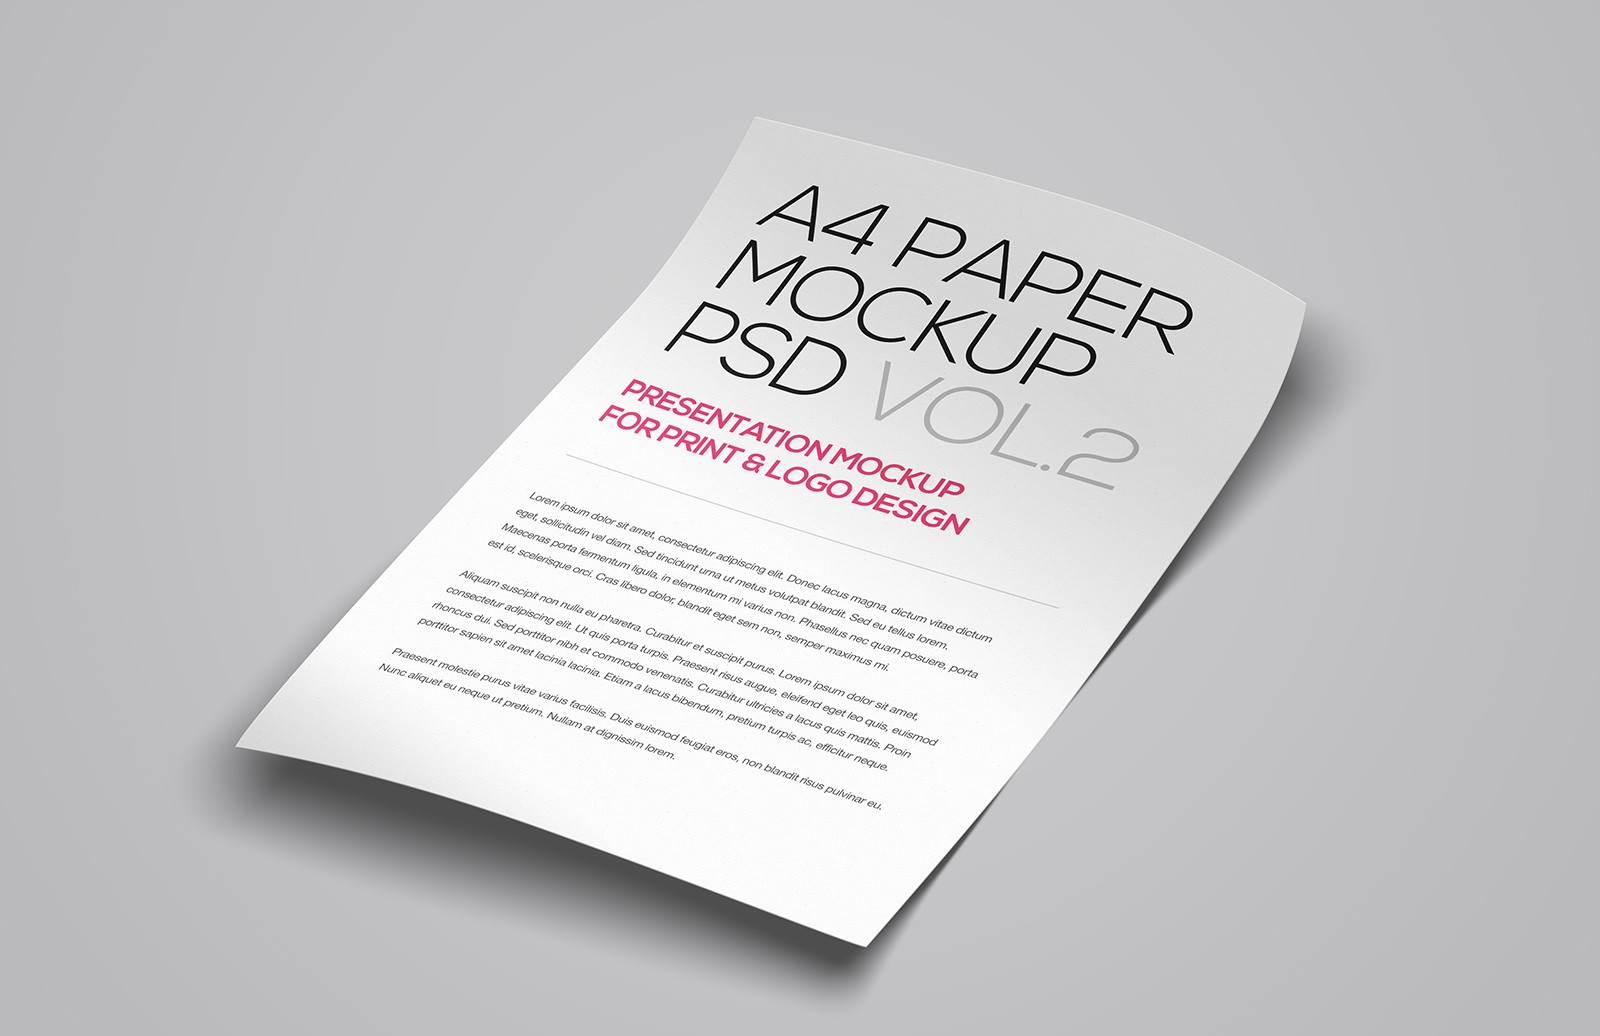 Floating A4 Paper Mockup Vol 2